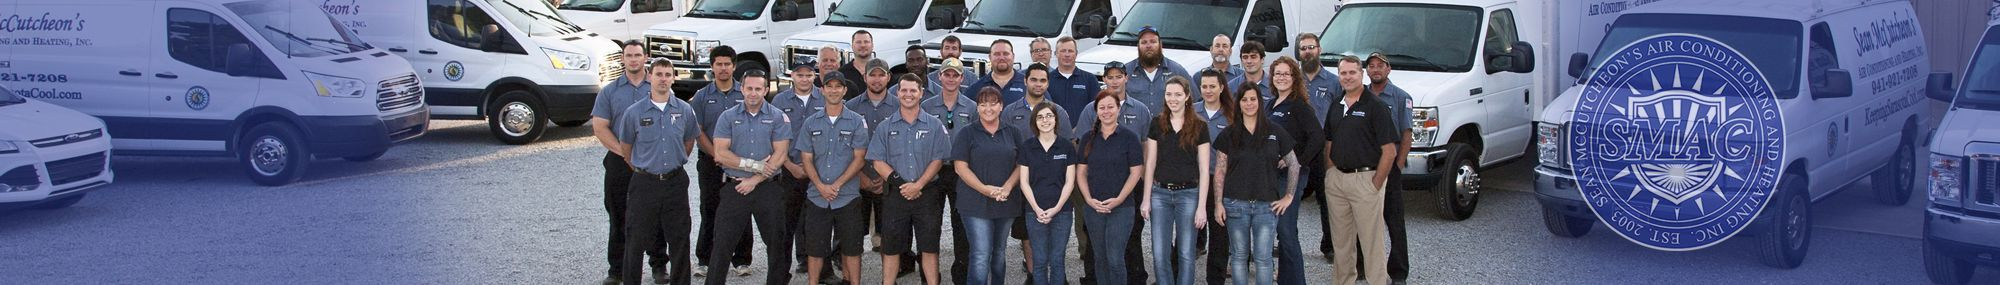 Sean McCutcheon's Air Conditioning and Heating team in front of the SMAC fleet